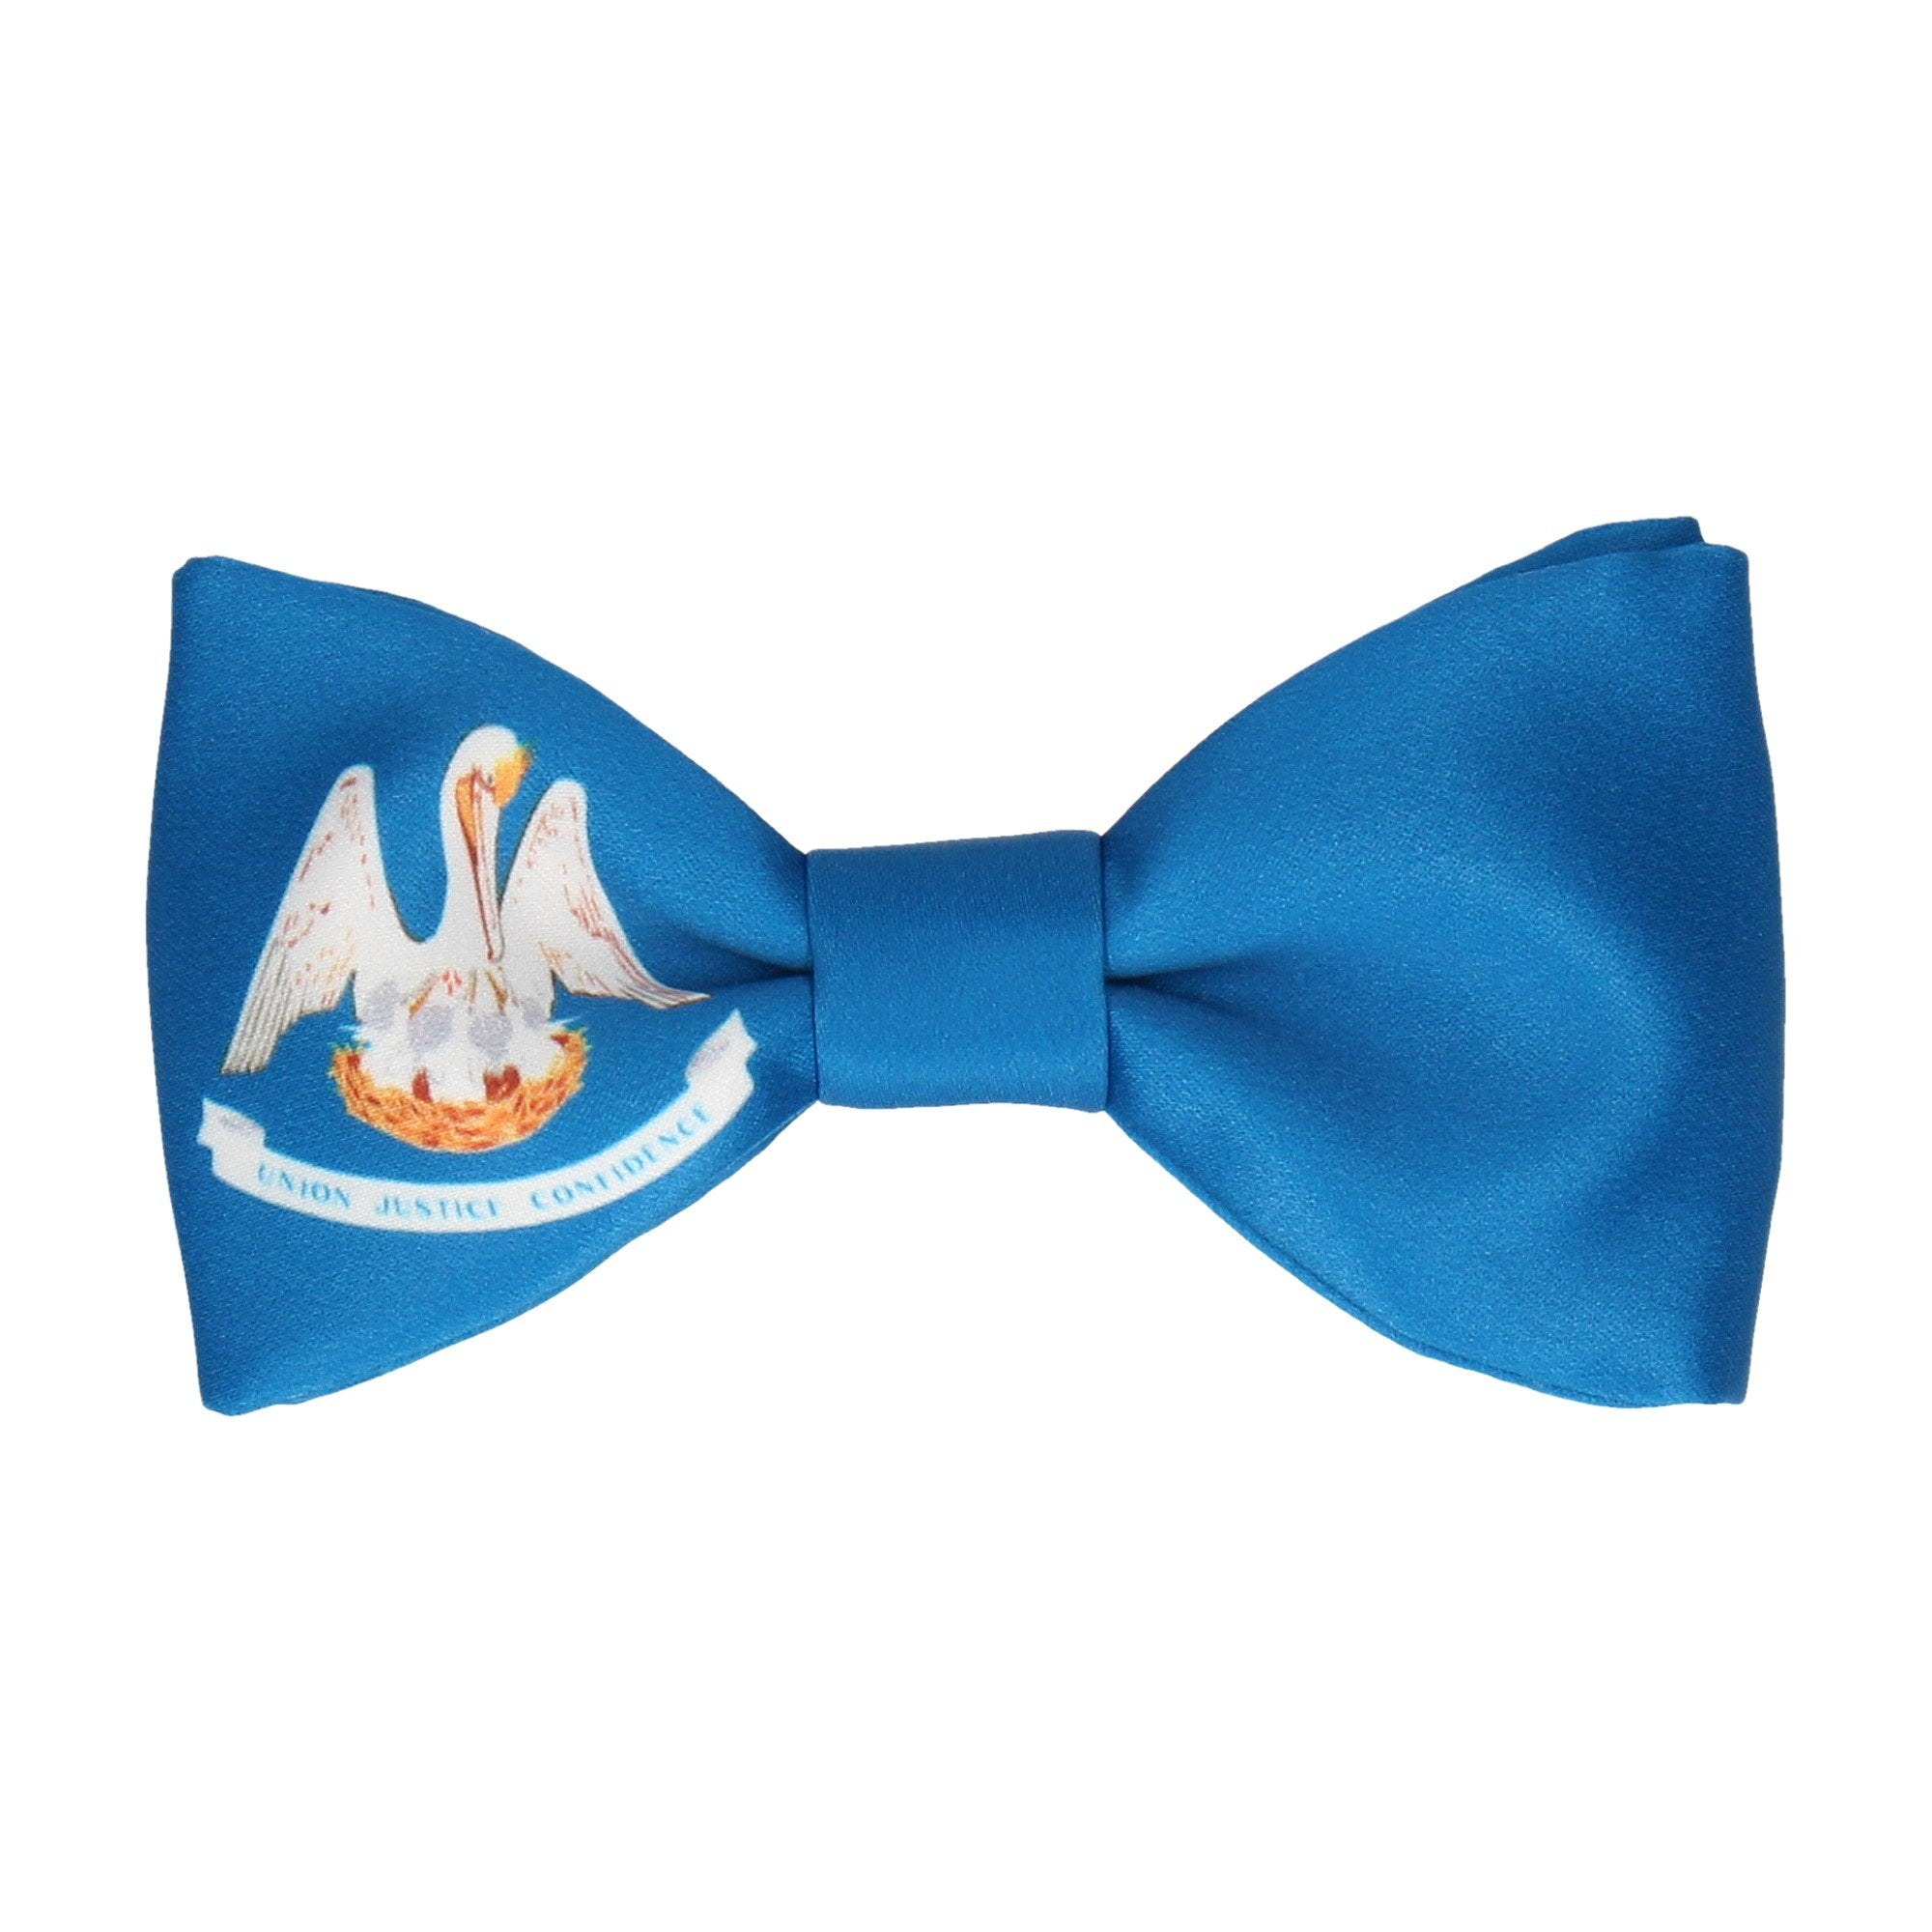 U.S. State Flag of Louisiana Bow Tie